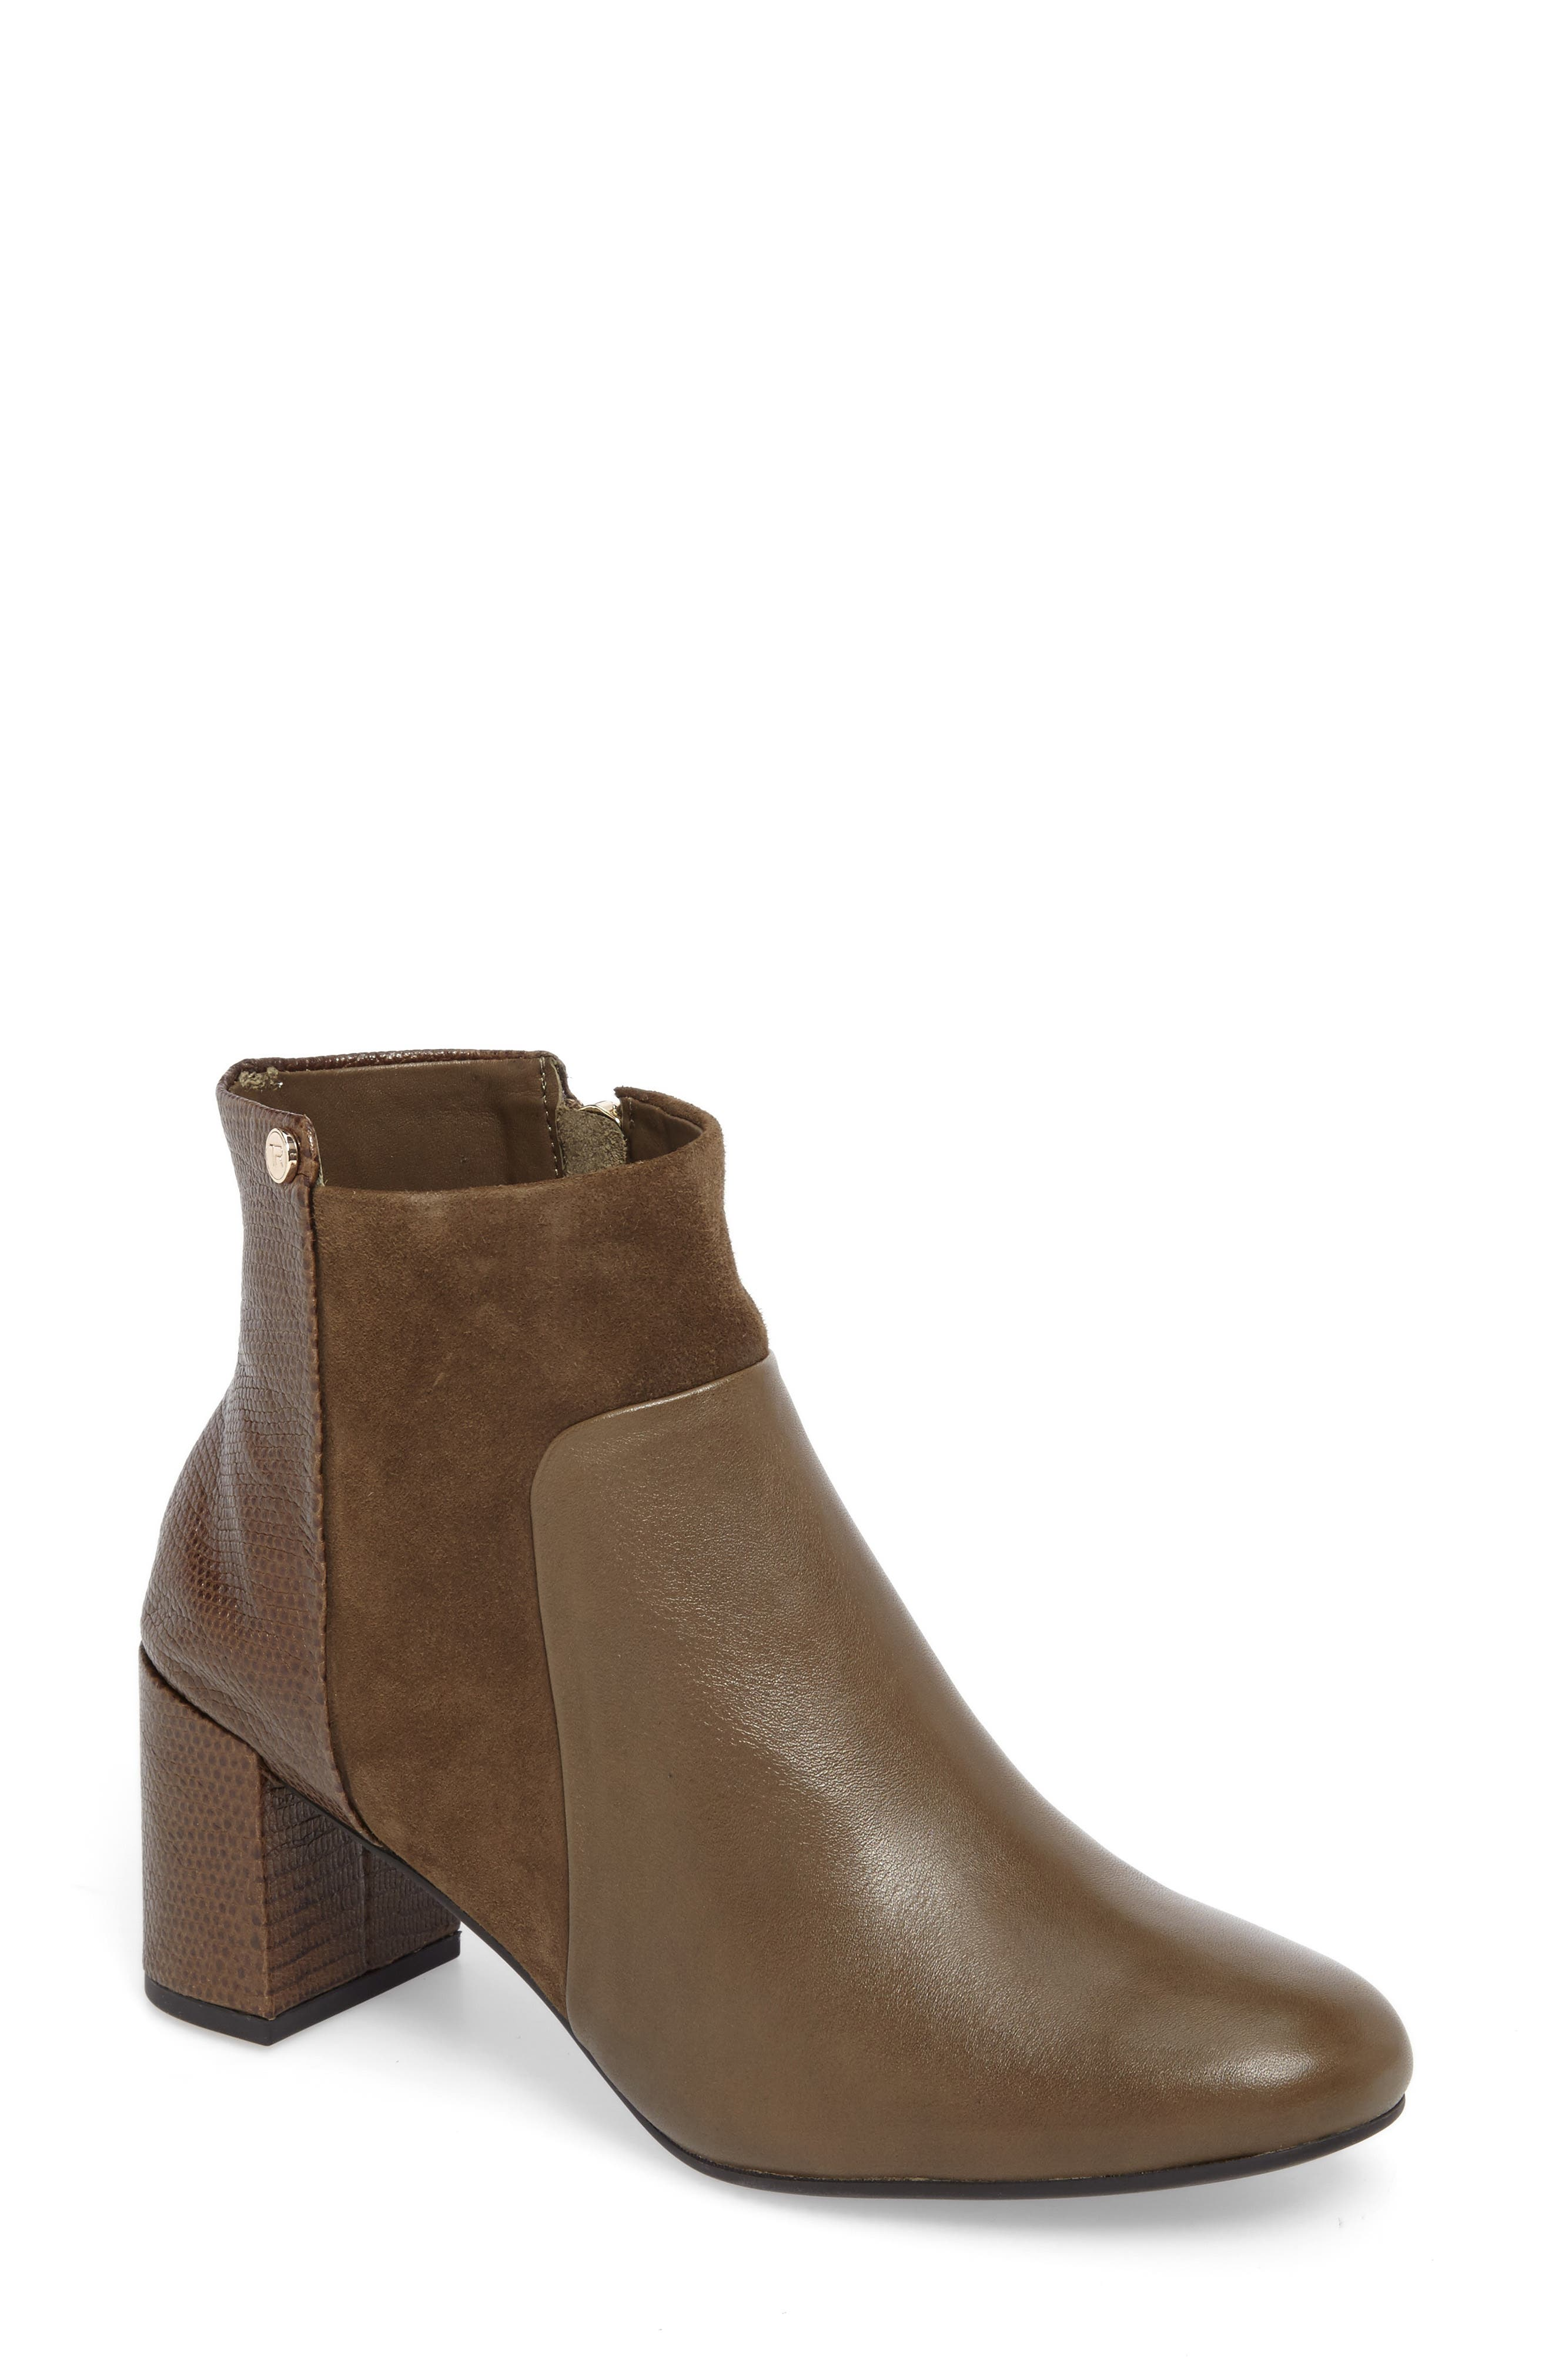 Camille Block Heel Bootie,                             Main thumbnail 1, color,                             Olive Leather